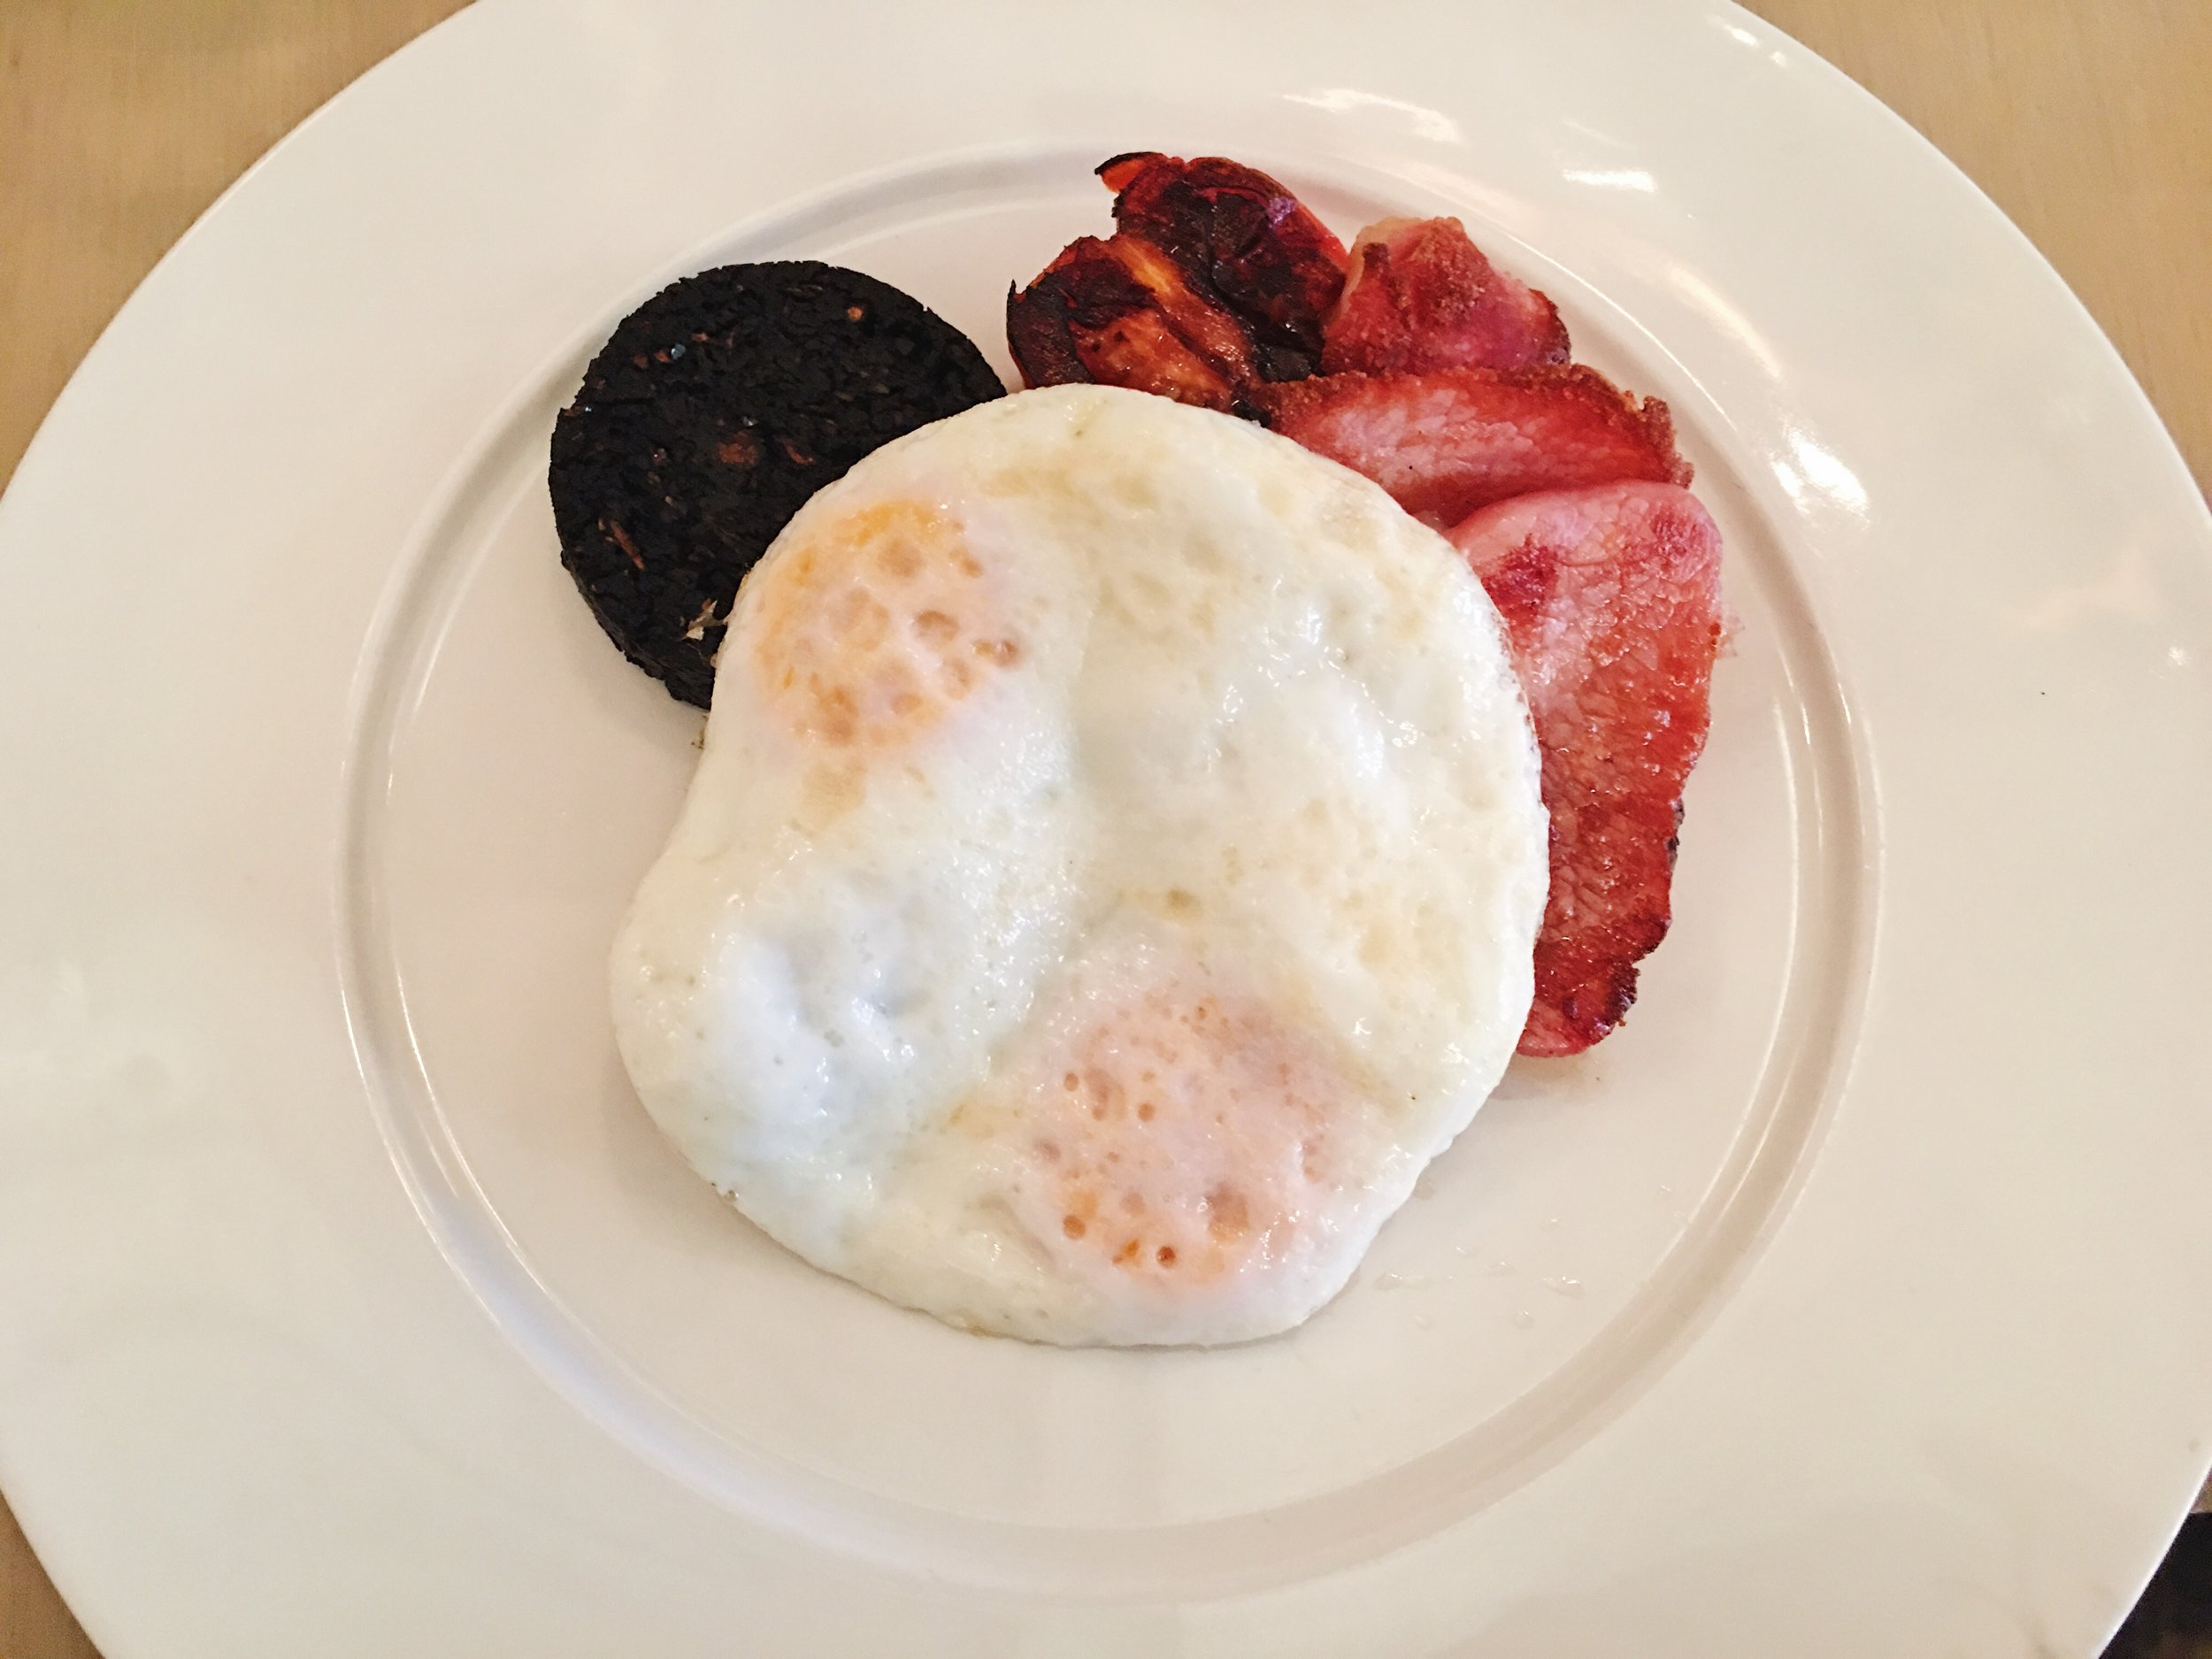 English Breakfast, including black pudding, at Berners Tavern, London